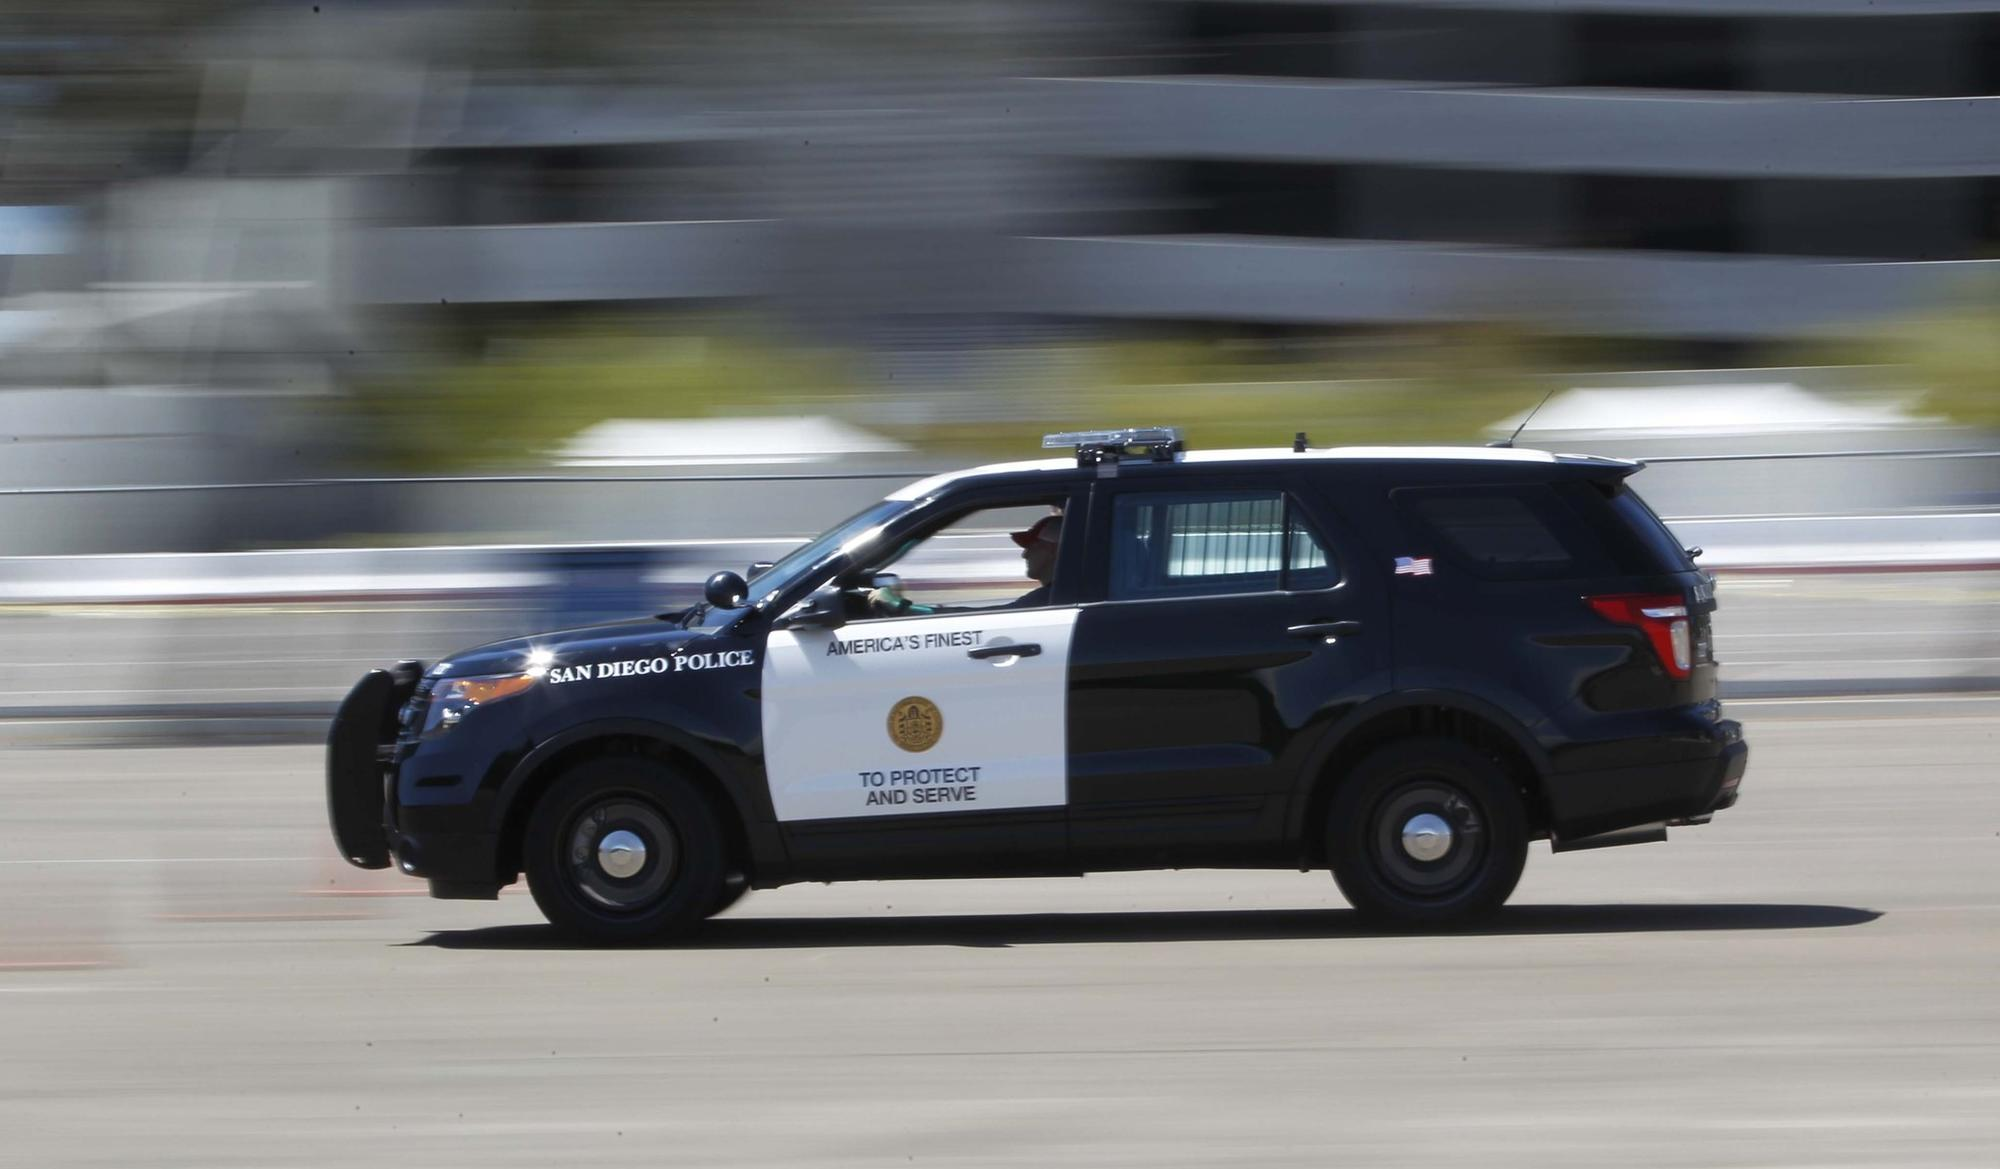 The San Diego Police department has moved away from Crown Victoria sedans after ford ceased productions and are transitioning to a new crossover vehicle call the Ford